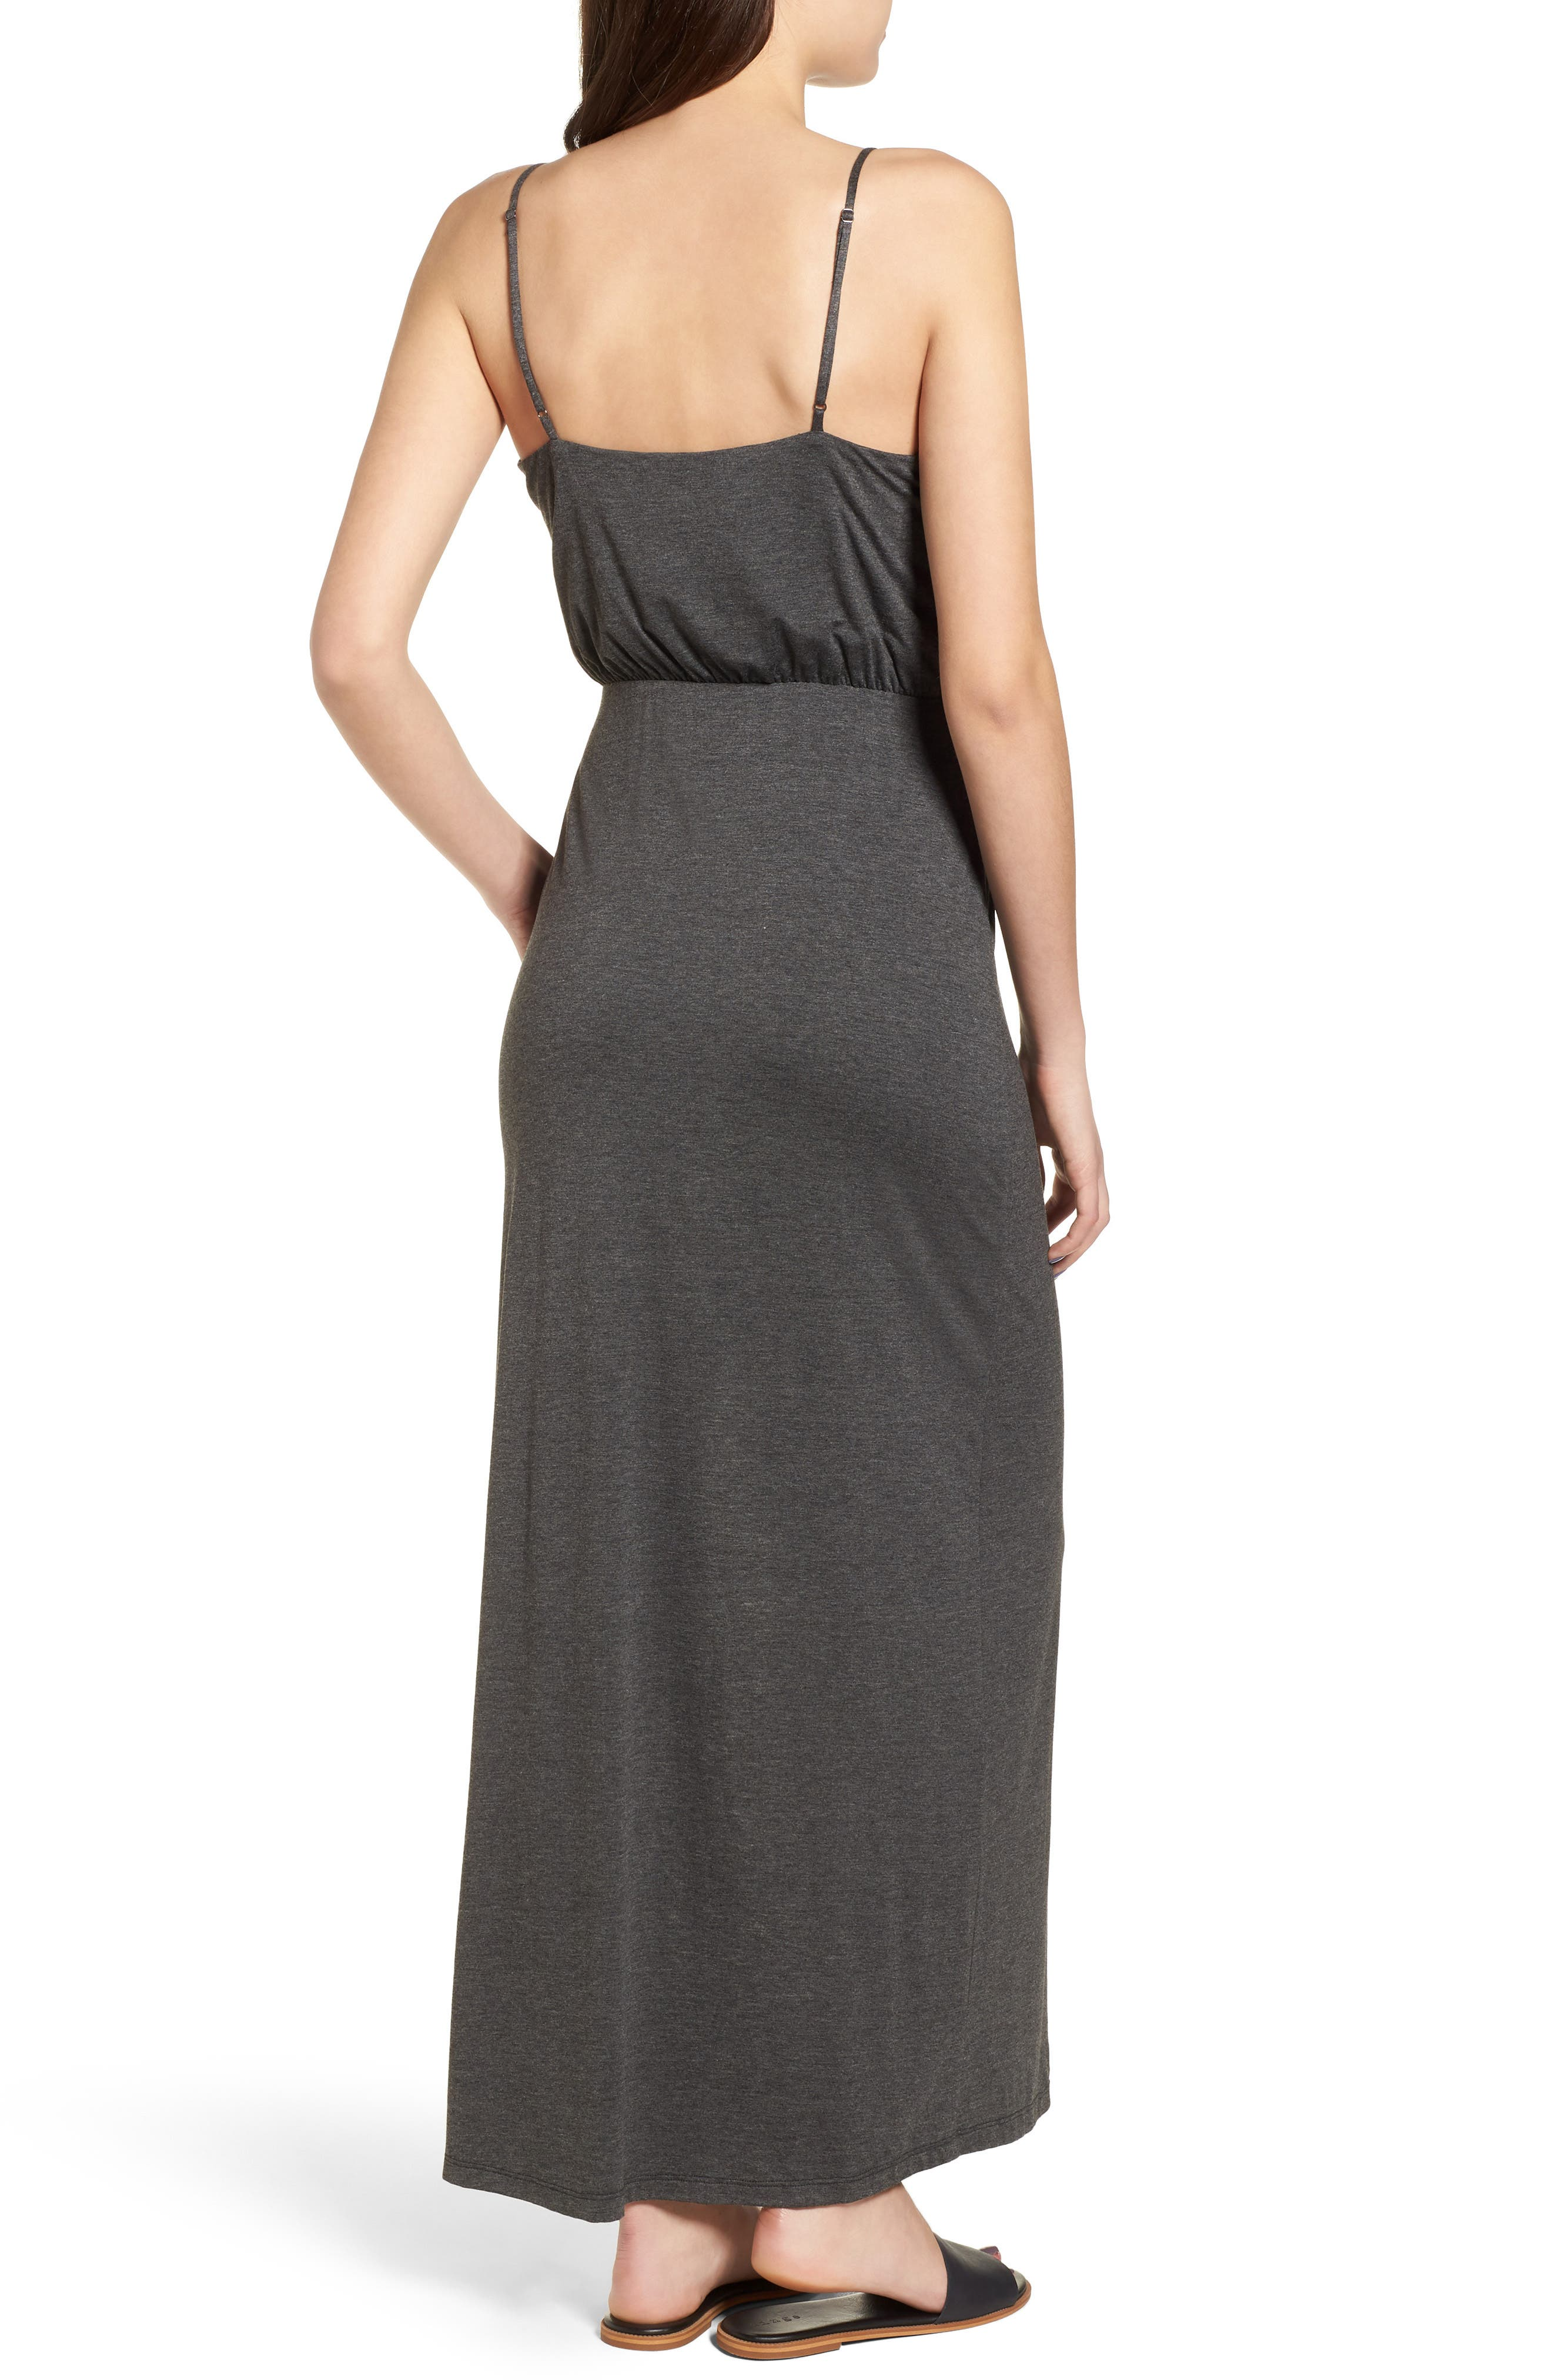 Knit Maxi Dress,                             Alternate thumbnail 2, color,                             Heather Charcoal